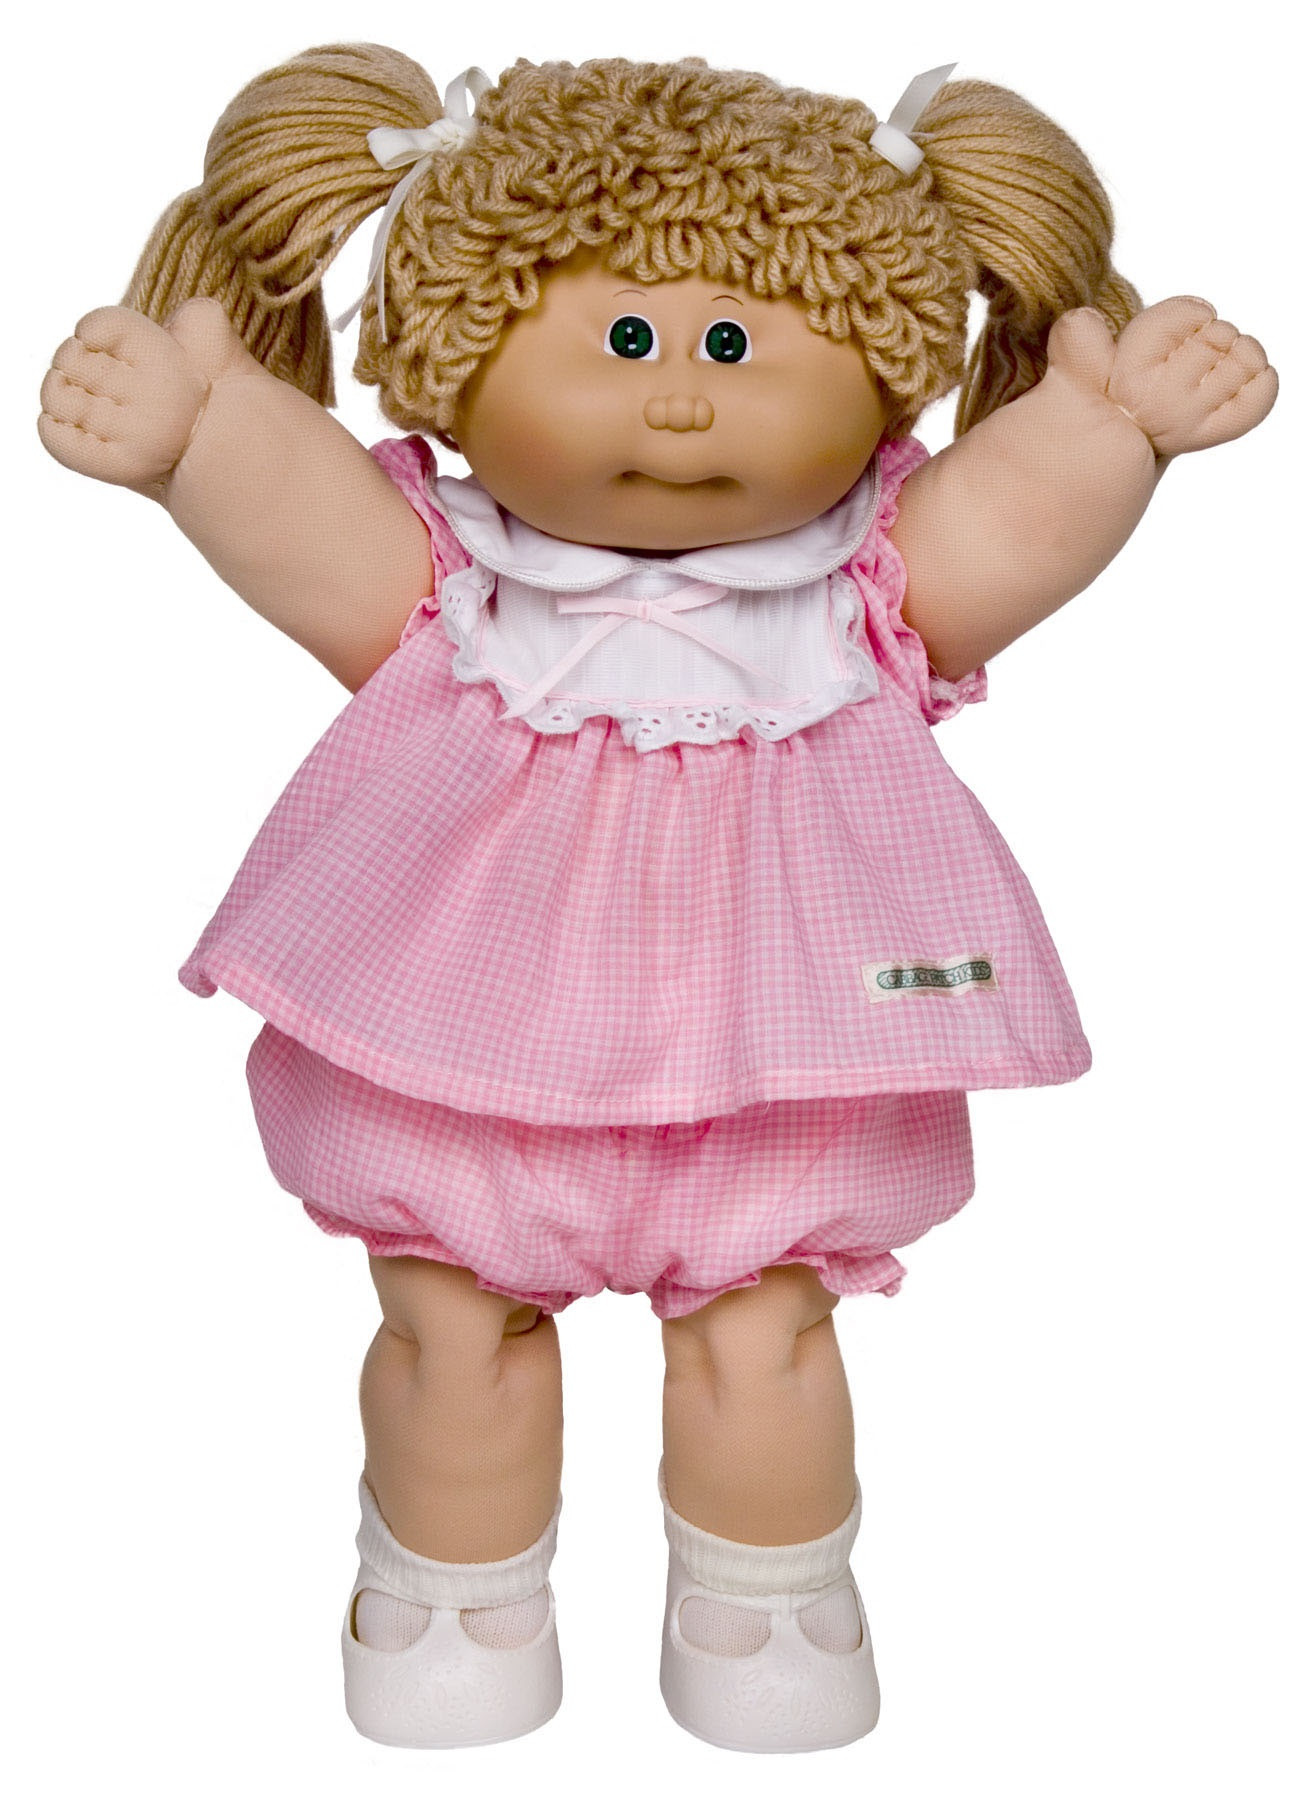 Cabbage Patch Doll Value Elegant 10 Christmas toys Through the Decades History Lists Of Contemporary 40 Pictures Cabbage Patch Doll Value